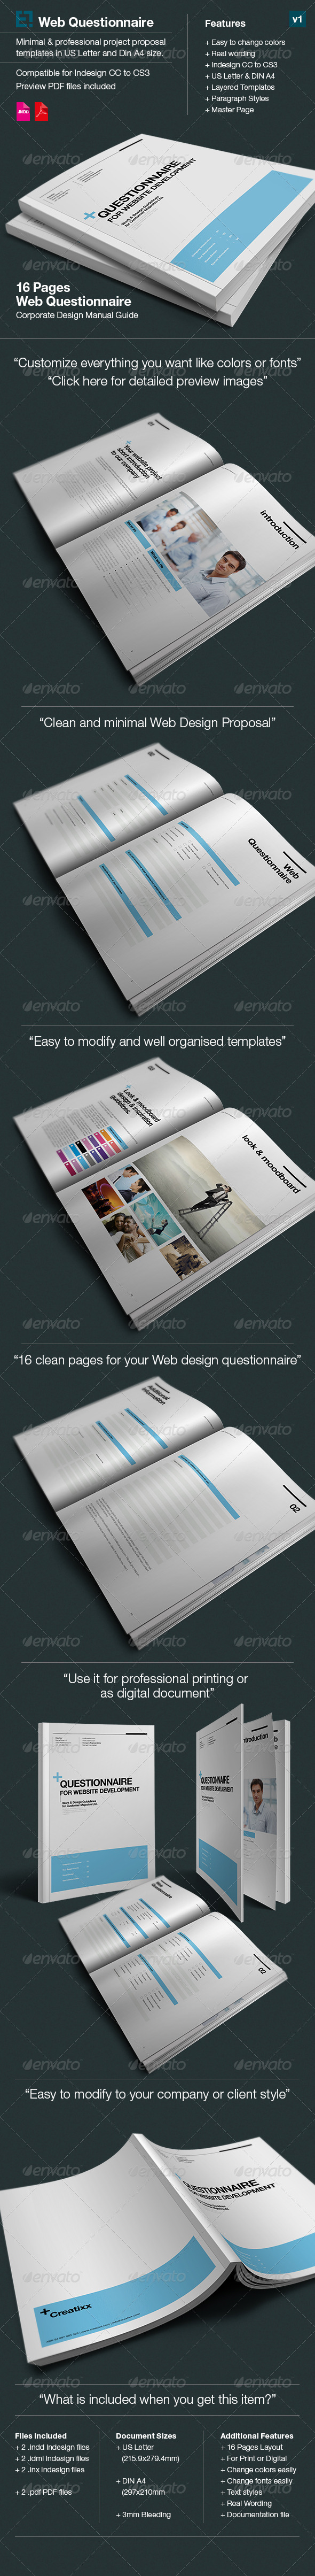 Dsign Questionnaire for Web Design - Proposal  - Proposals & Invoices Stationery